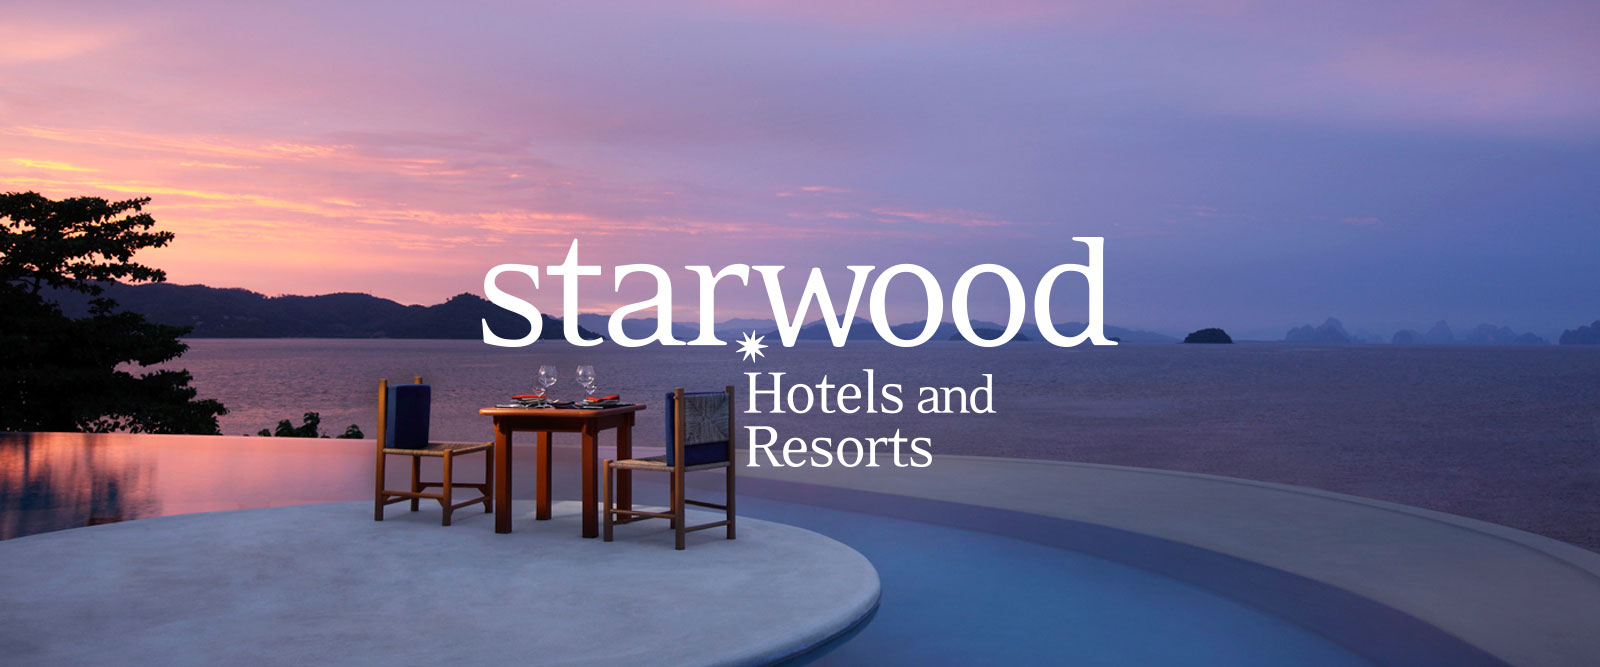 Starwood Hotels Resorts Worldwide Inc Announced Opening At Least 9 In Florida Usa The Next Three Years Will Reach 30